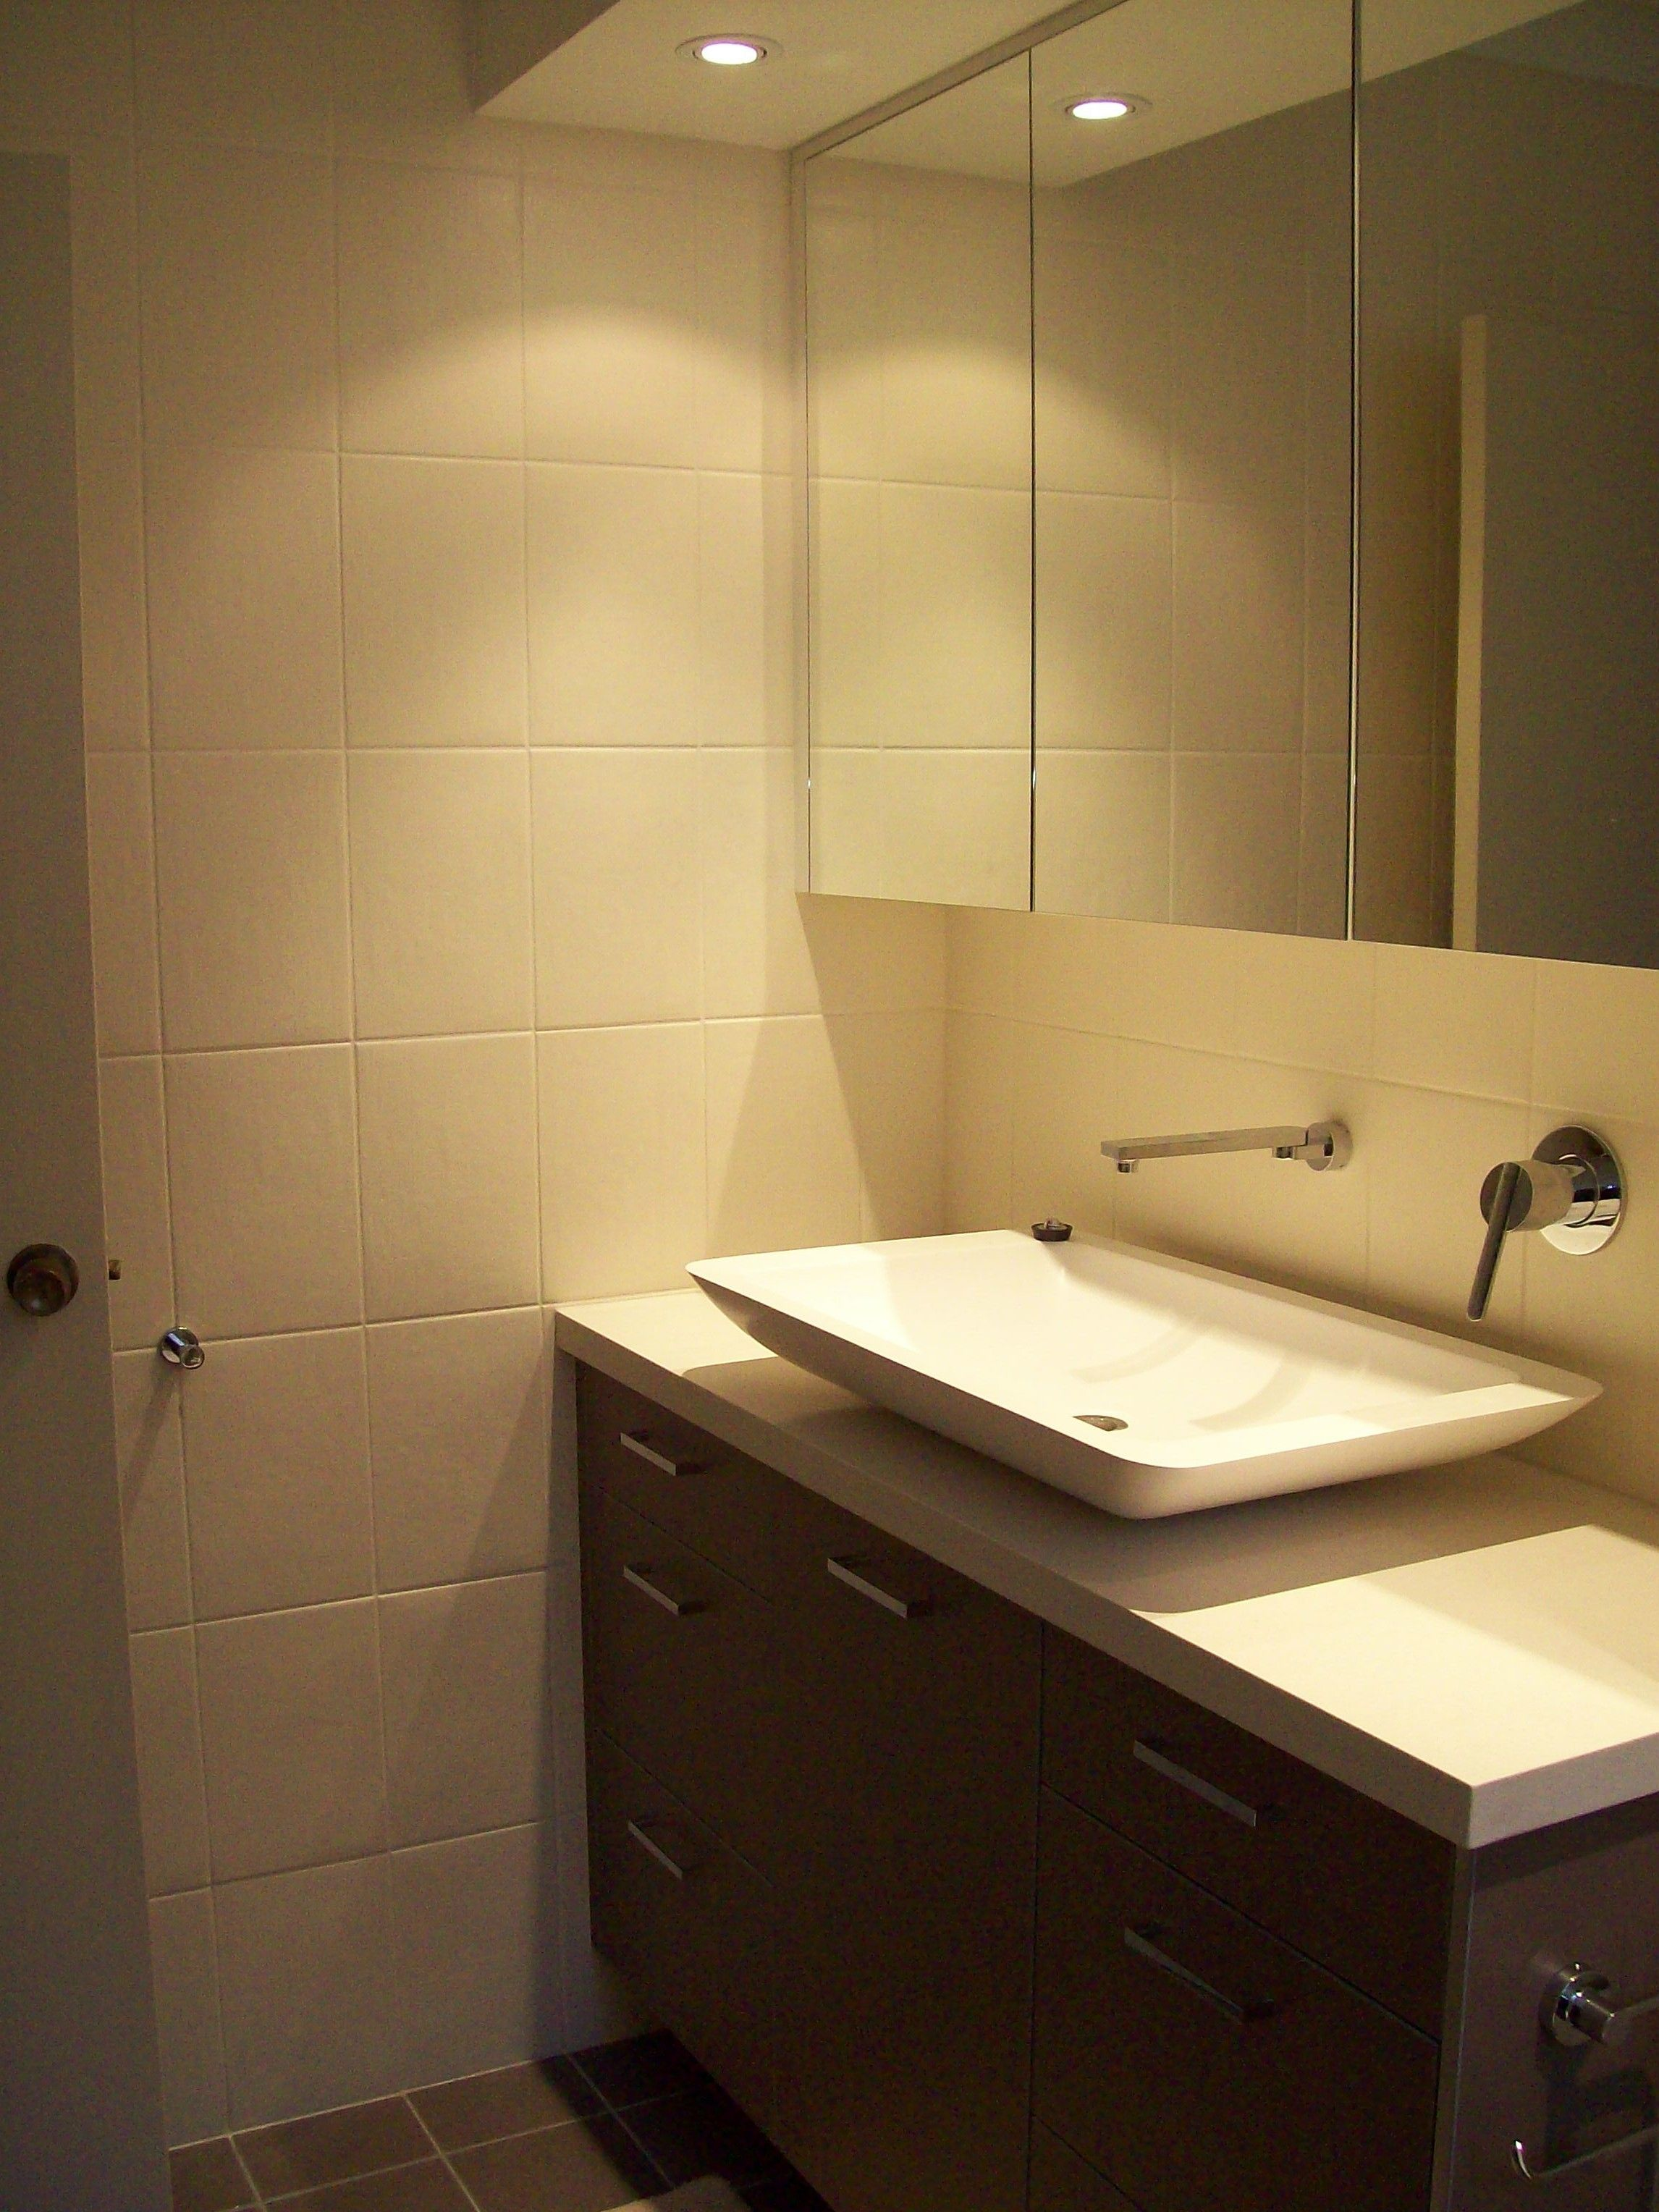 Bathroom renovations hornsby - Vanity Shaving Cabinet And Recessed Lighting